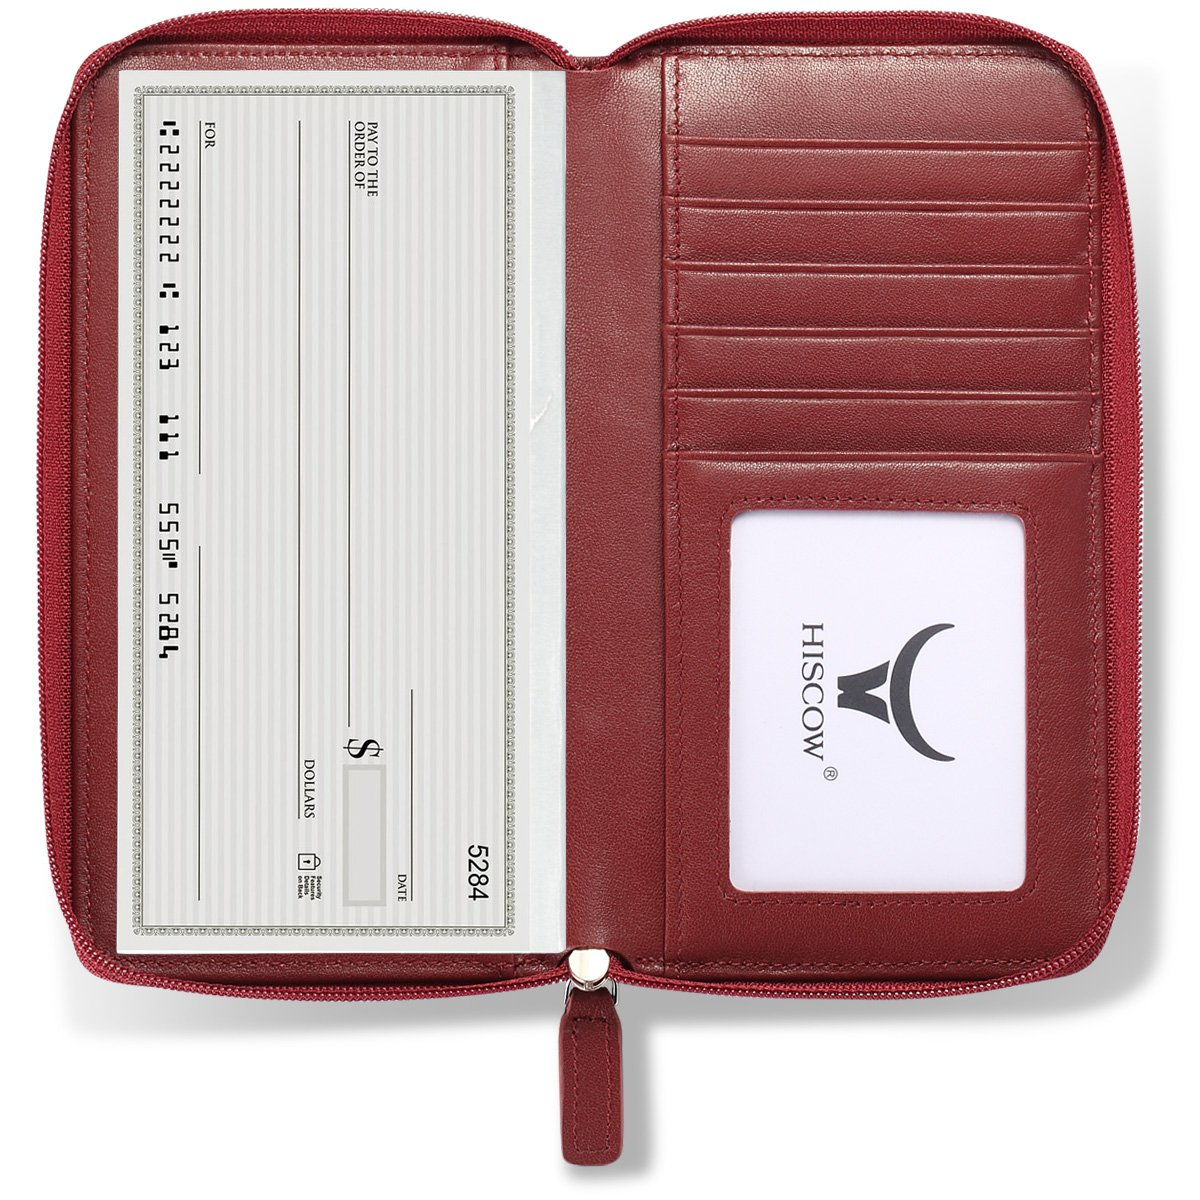 HISCOW Zippered Checkbook Cover & Card Holder with Divider - Italian Calfskin (Wine Red) by HISCOW